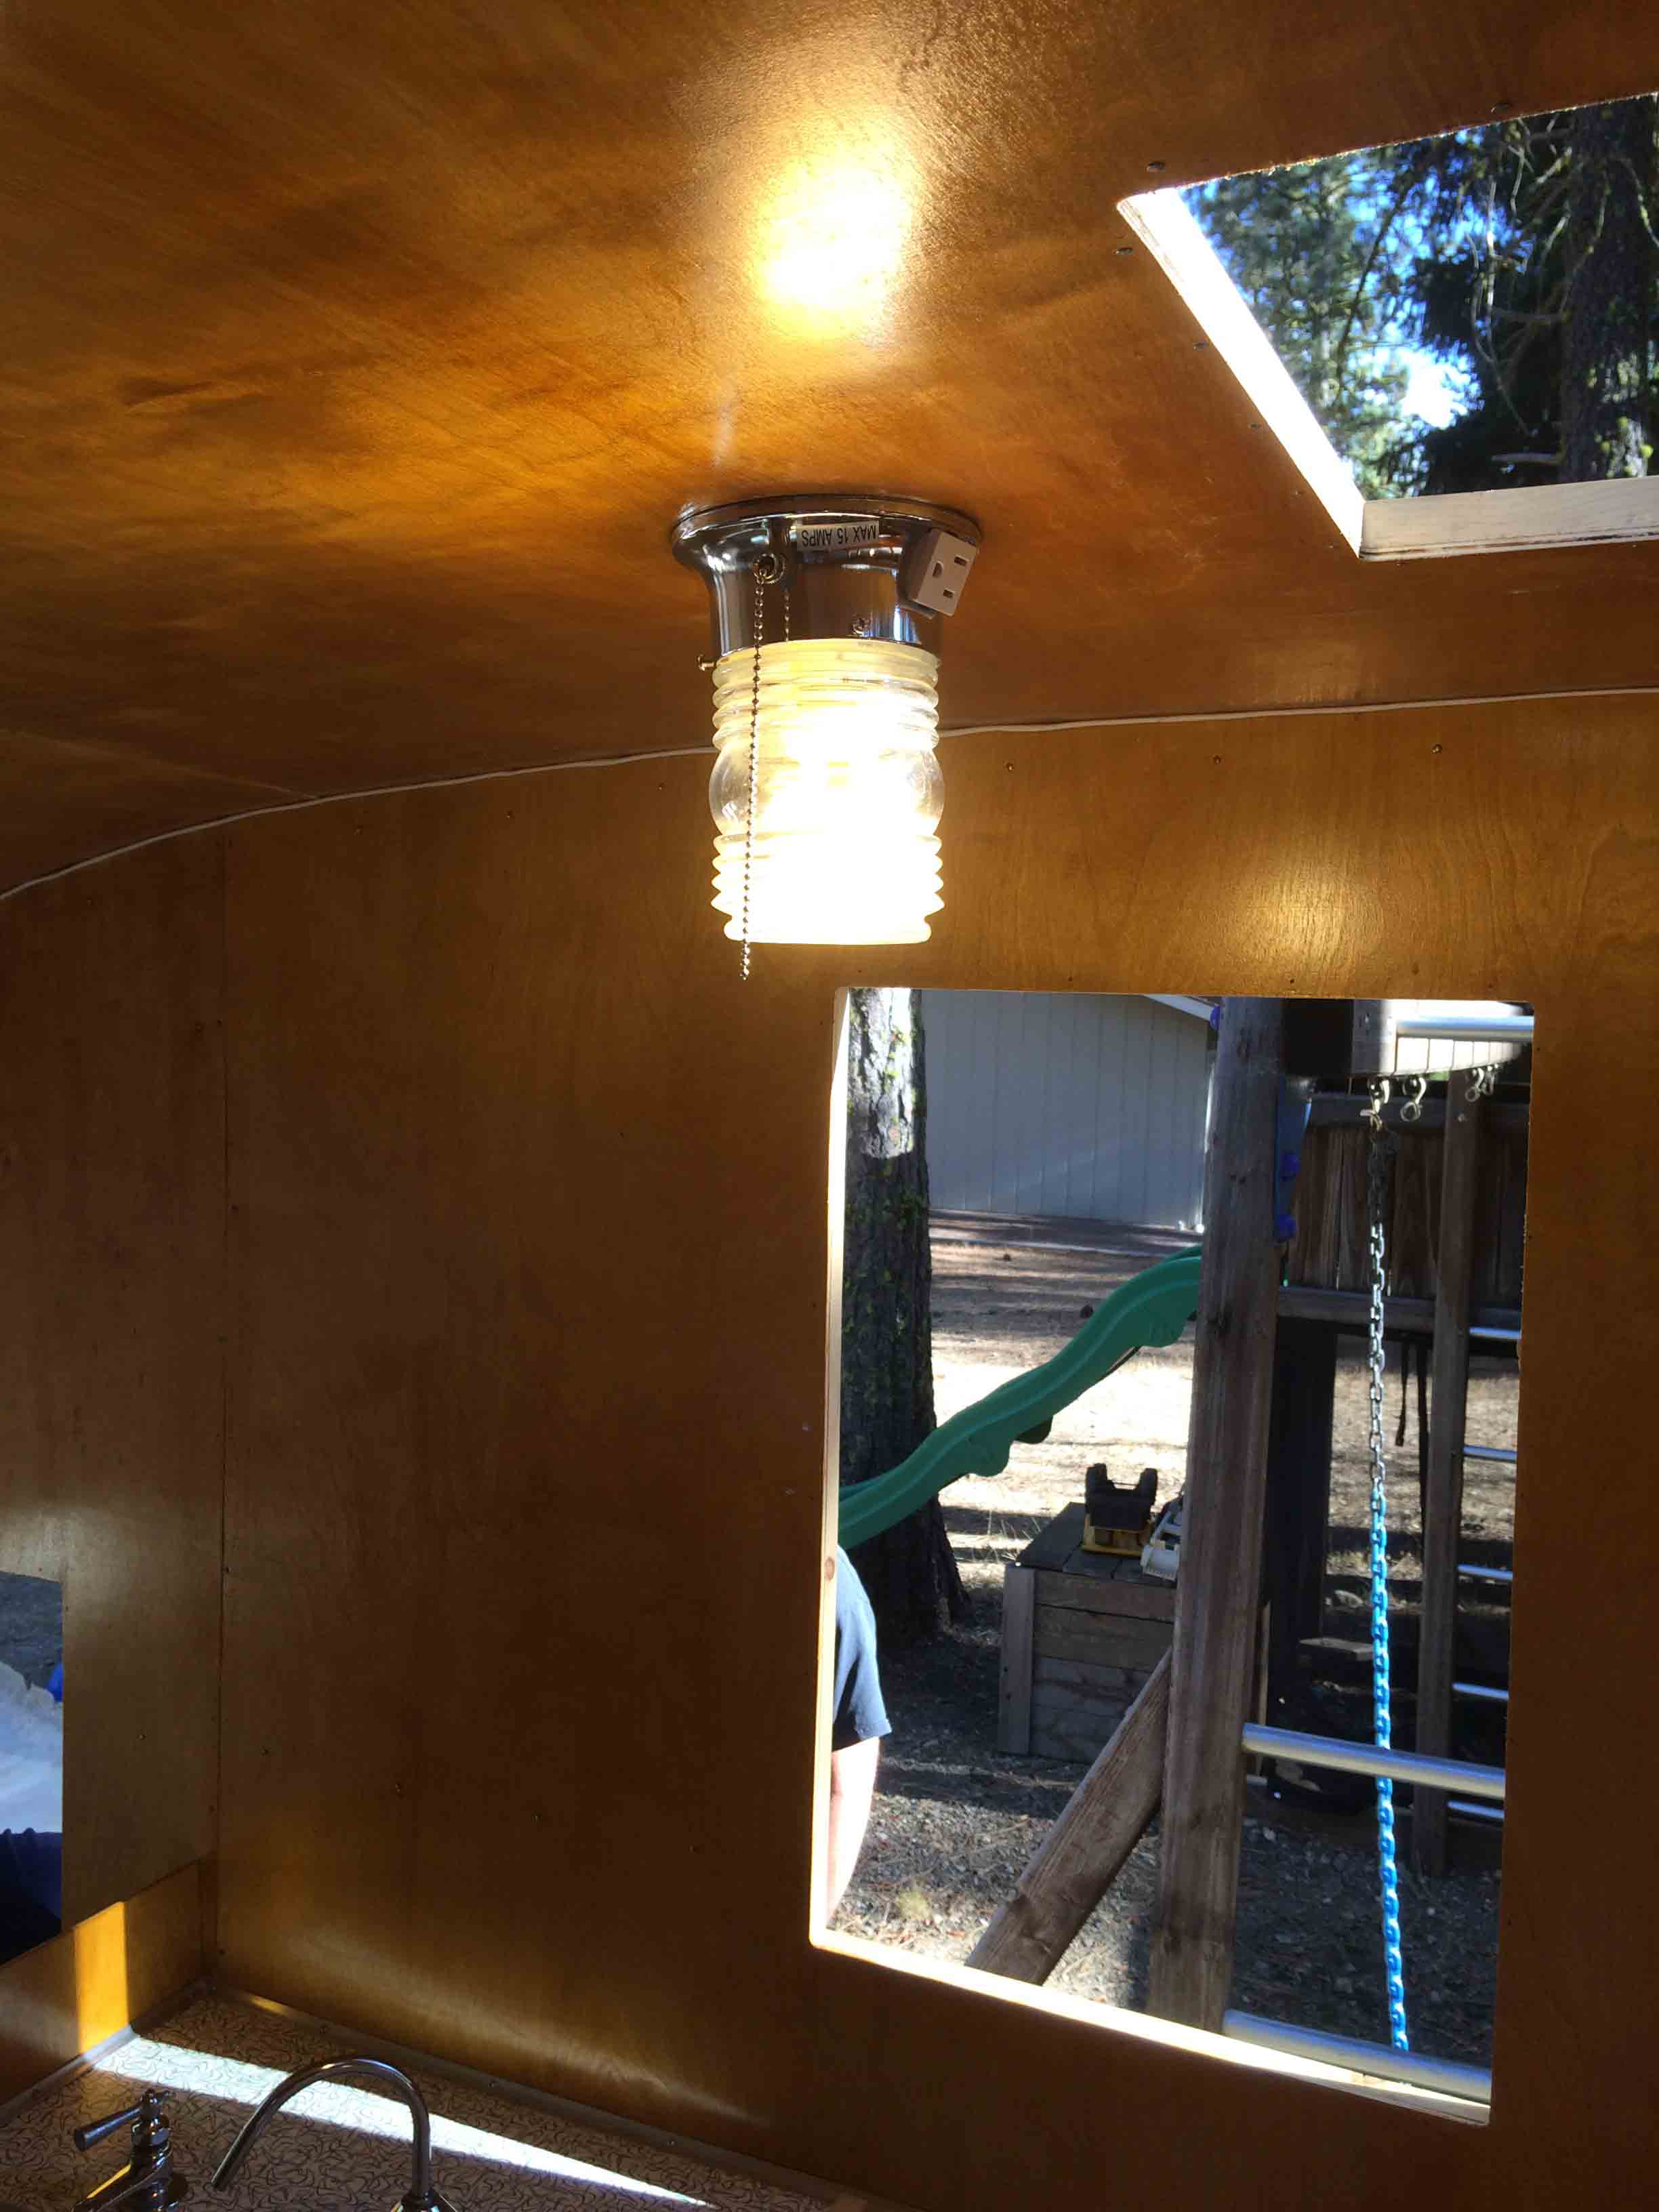 How To Wire Your Vintage Camper Trailer Wiring A New Light Fixture Old The Next Order Of Business Is Connect Water Tank Install Faucet Hand Pump And Drain Hard Could That Be These Words Have Gotten Me